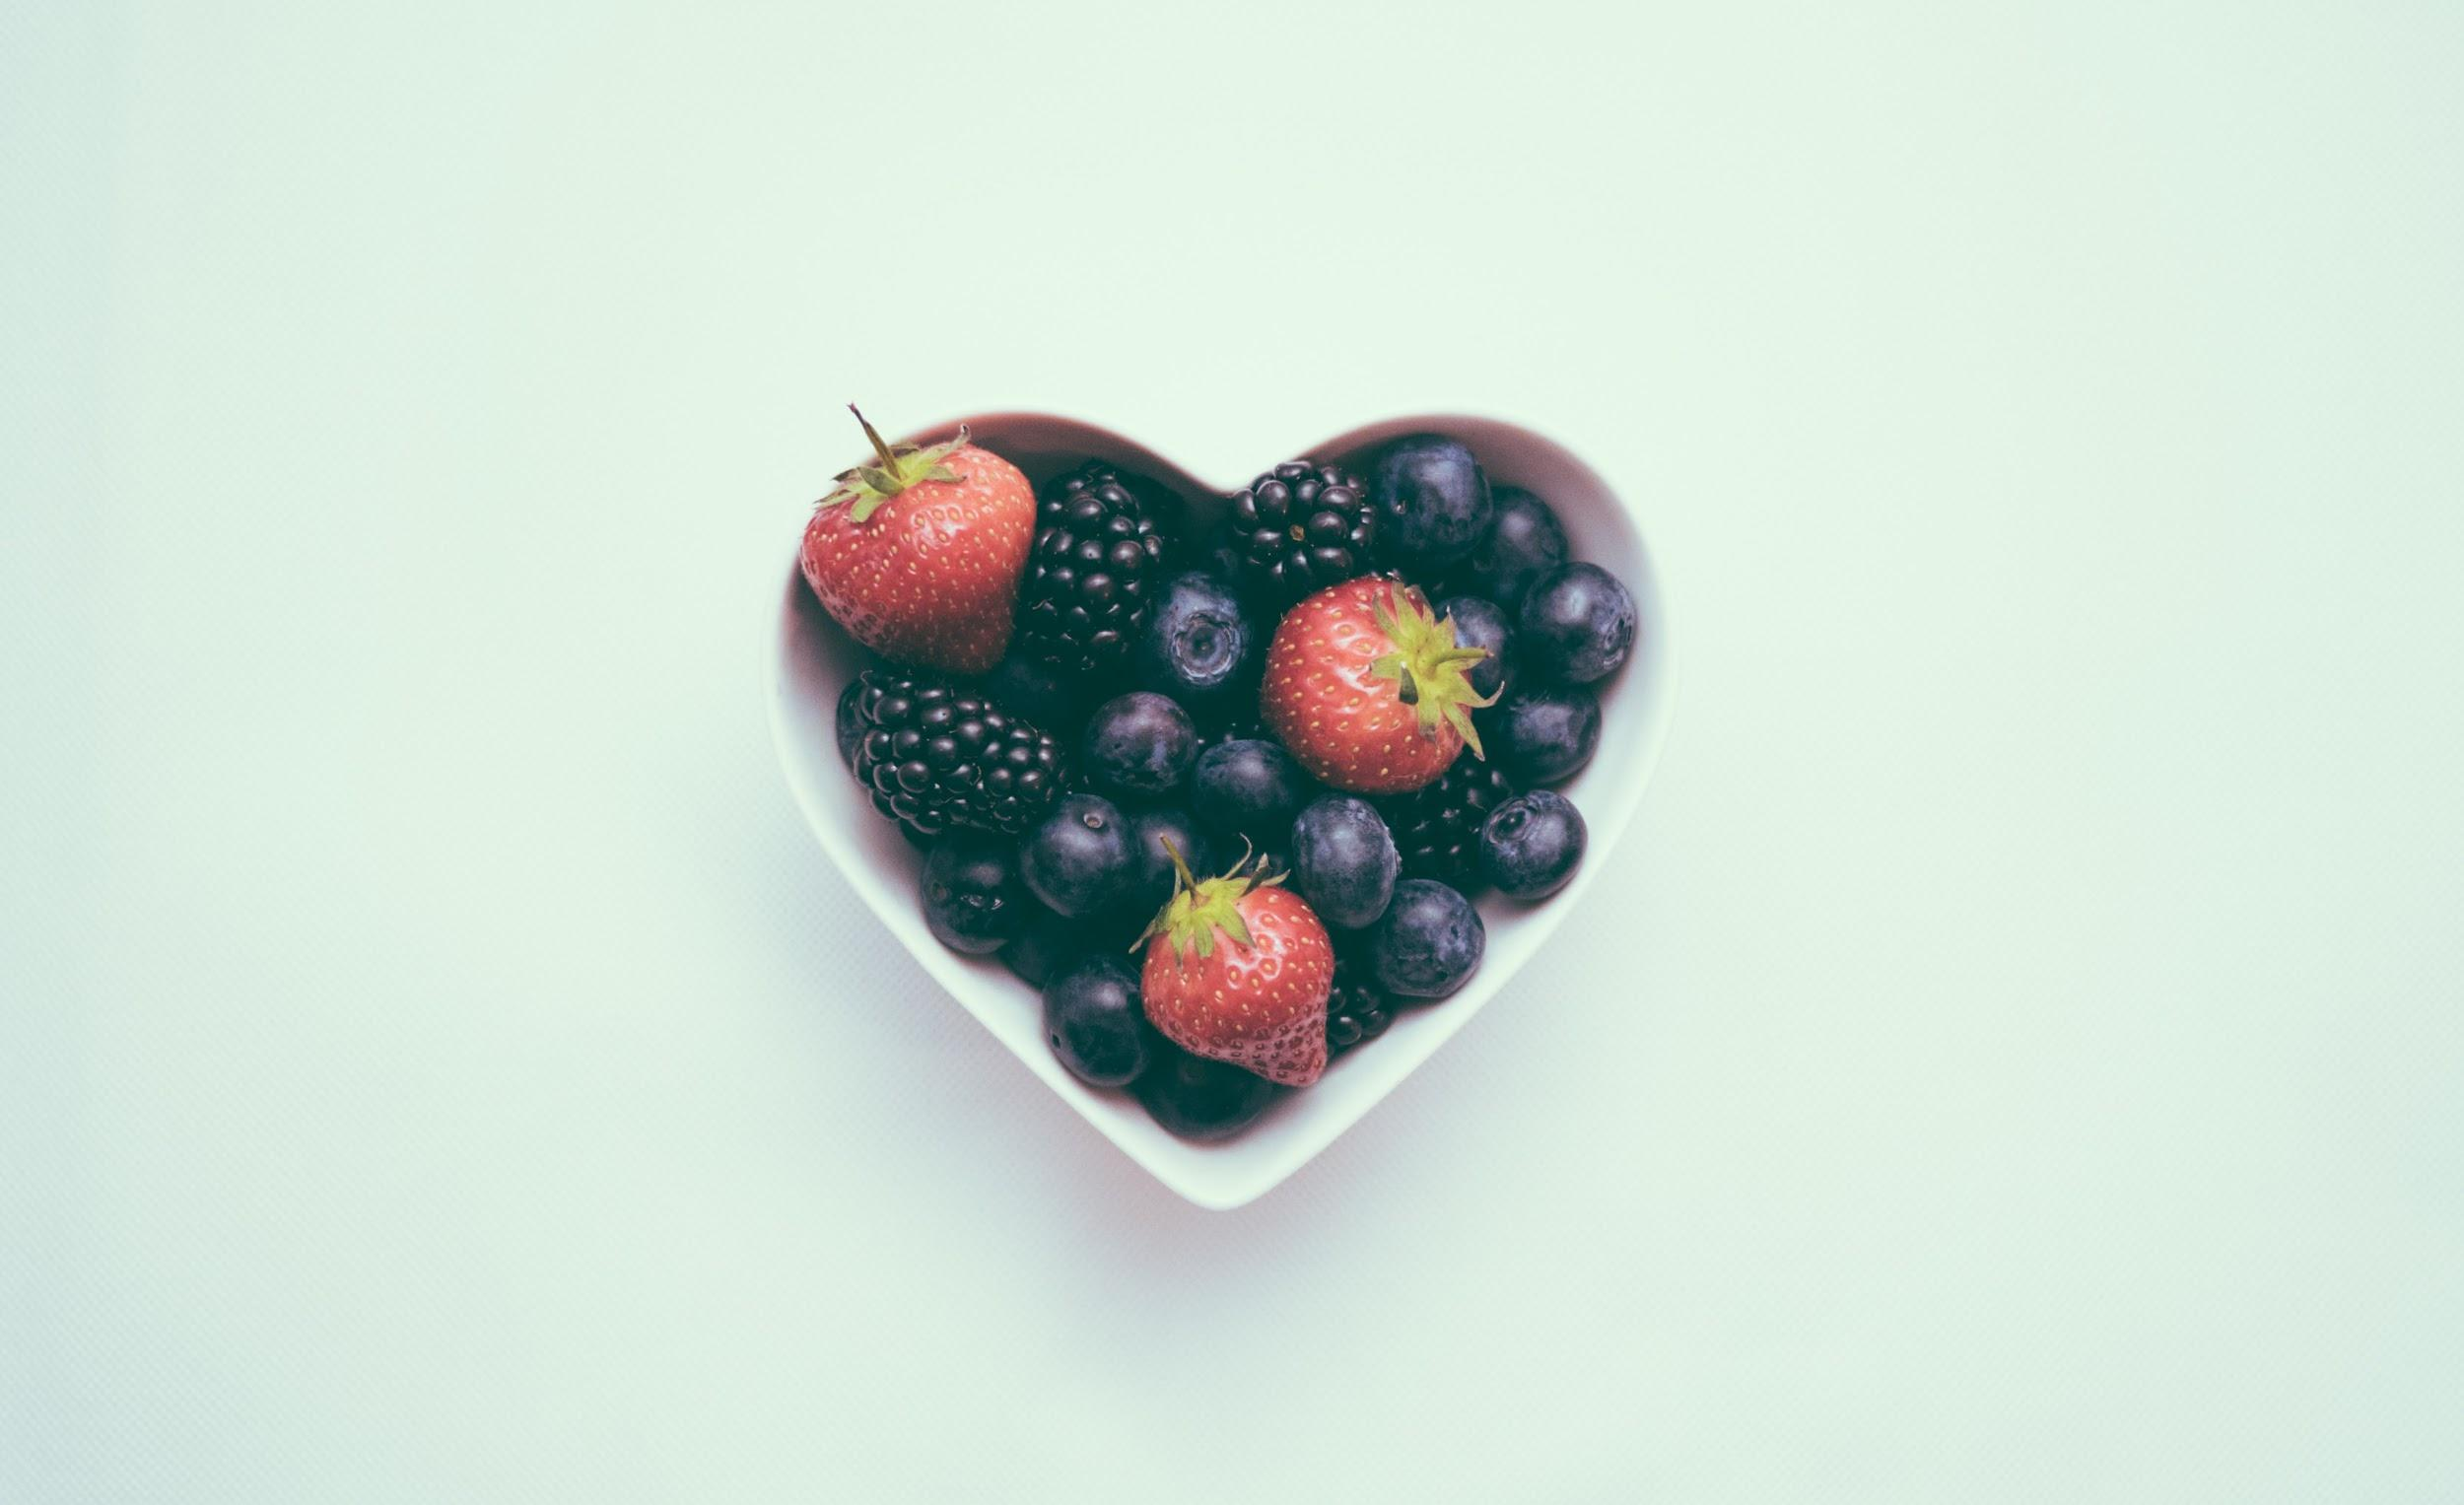 A white heart-shaped bowl filled with blackberries, blueberries, and strawberries